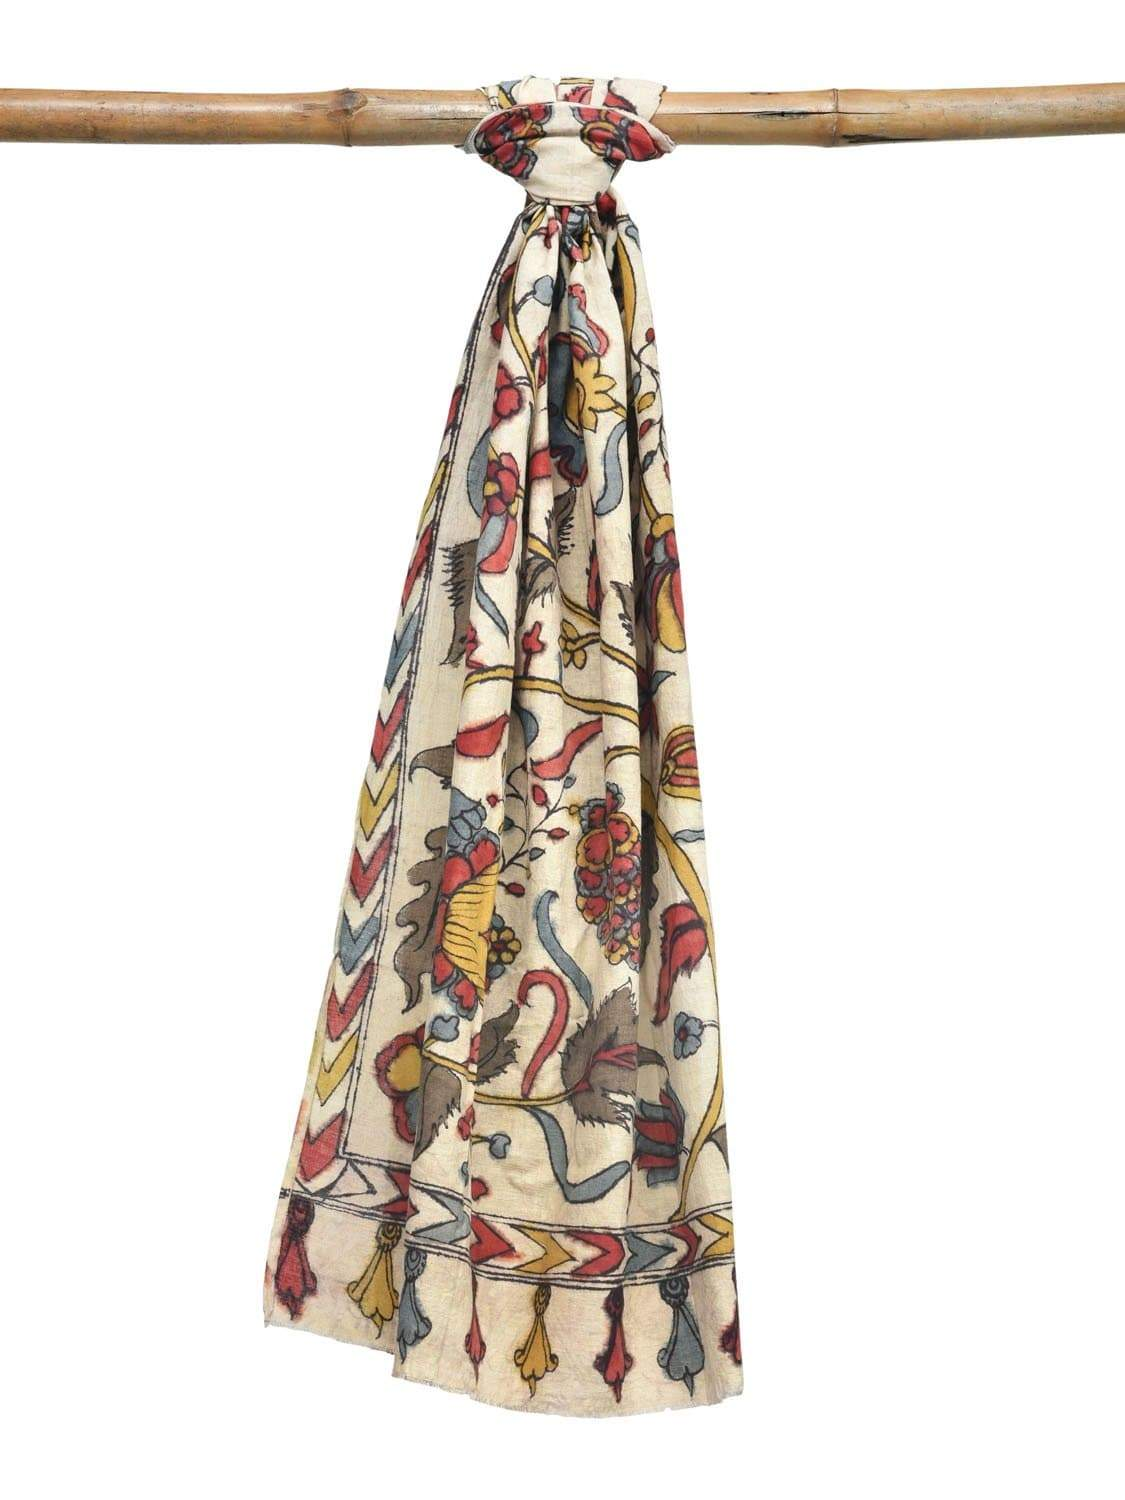 Cream Kalamkari Hand Painted Cotton Handloom Stole with Exotic Flowers and Leaves Design ds1930